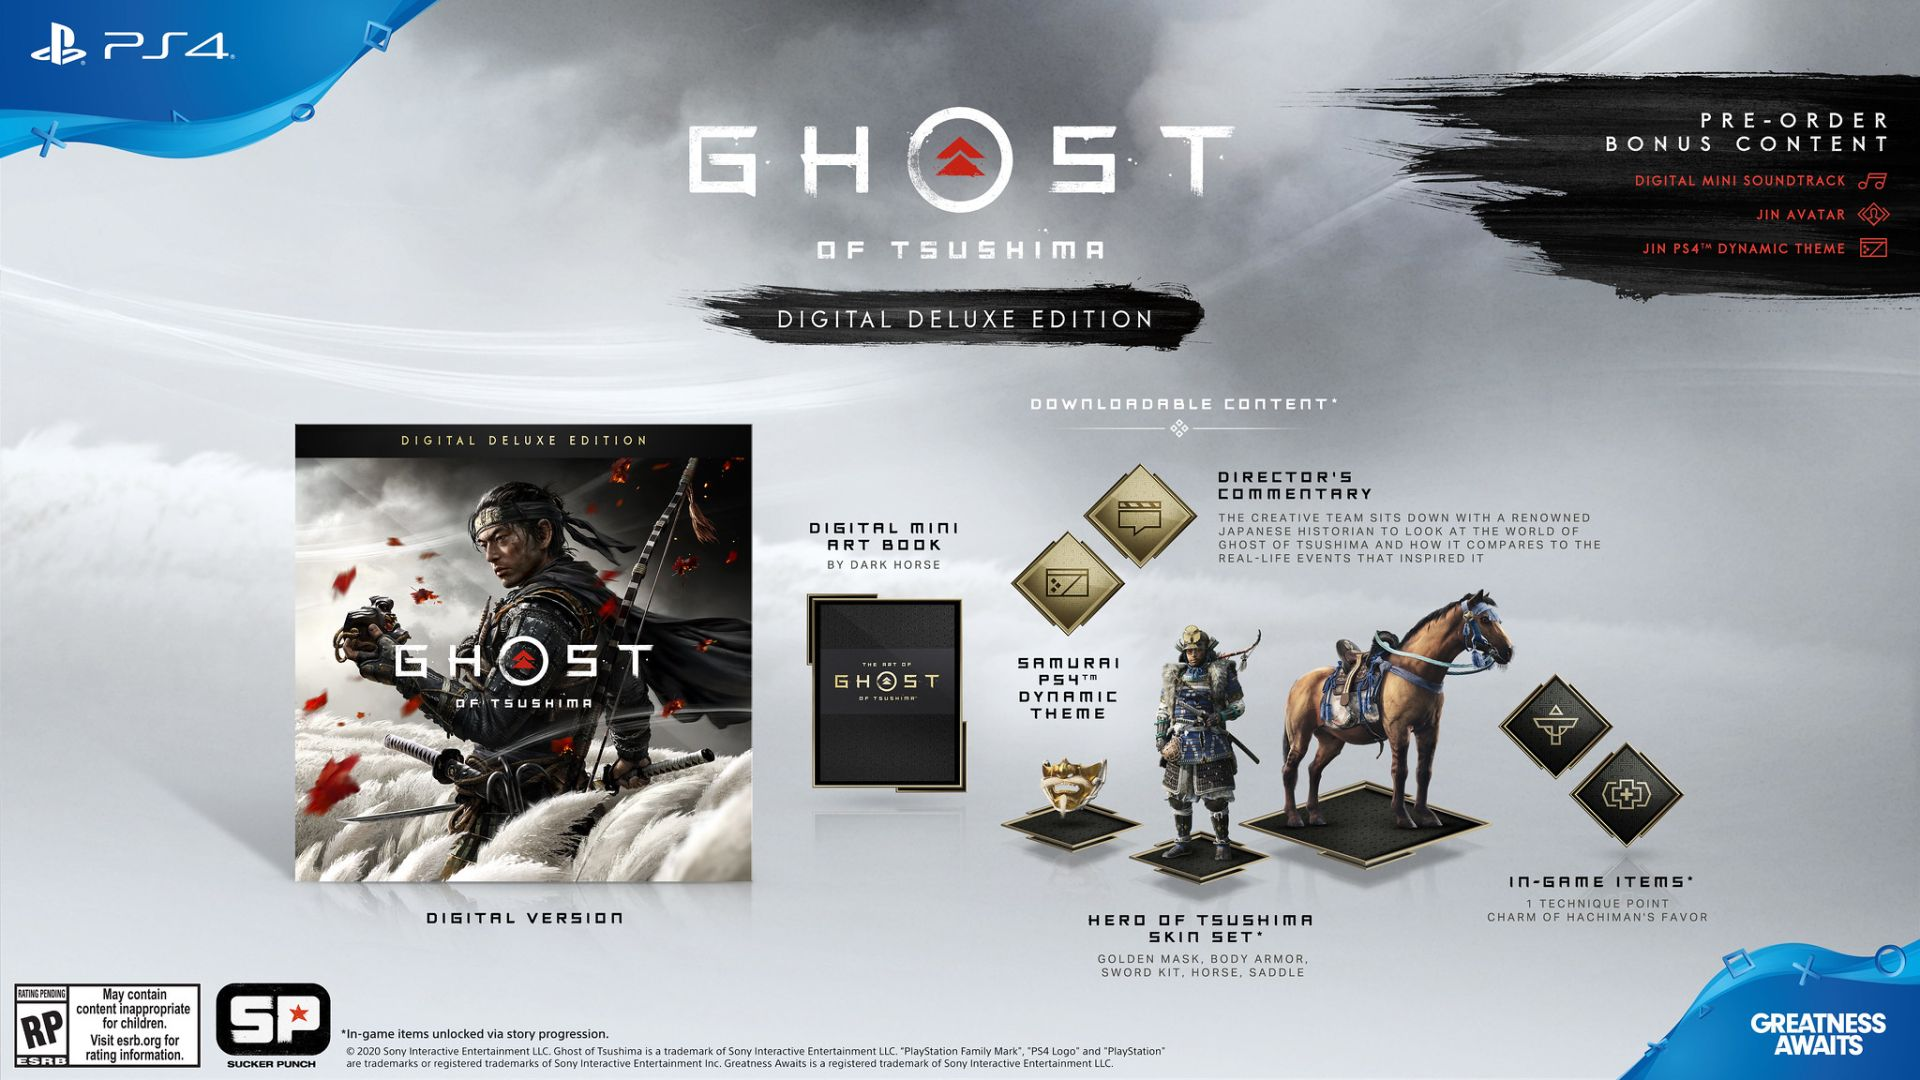 Ghost of tsushima deluxe edition